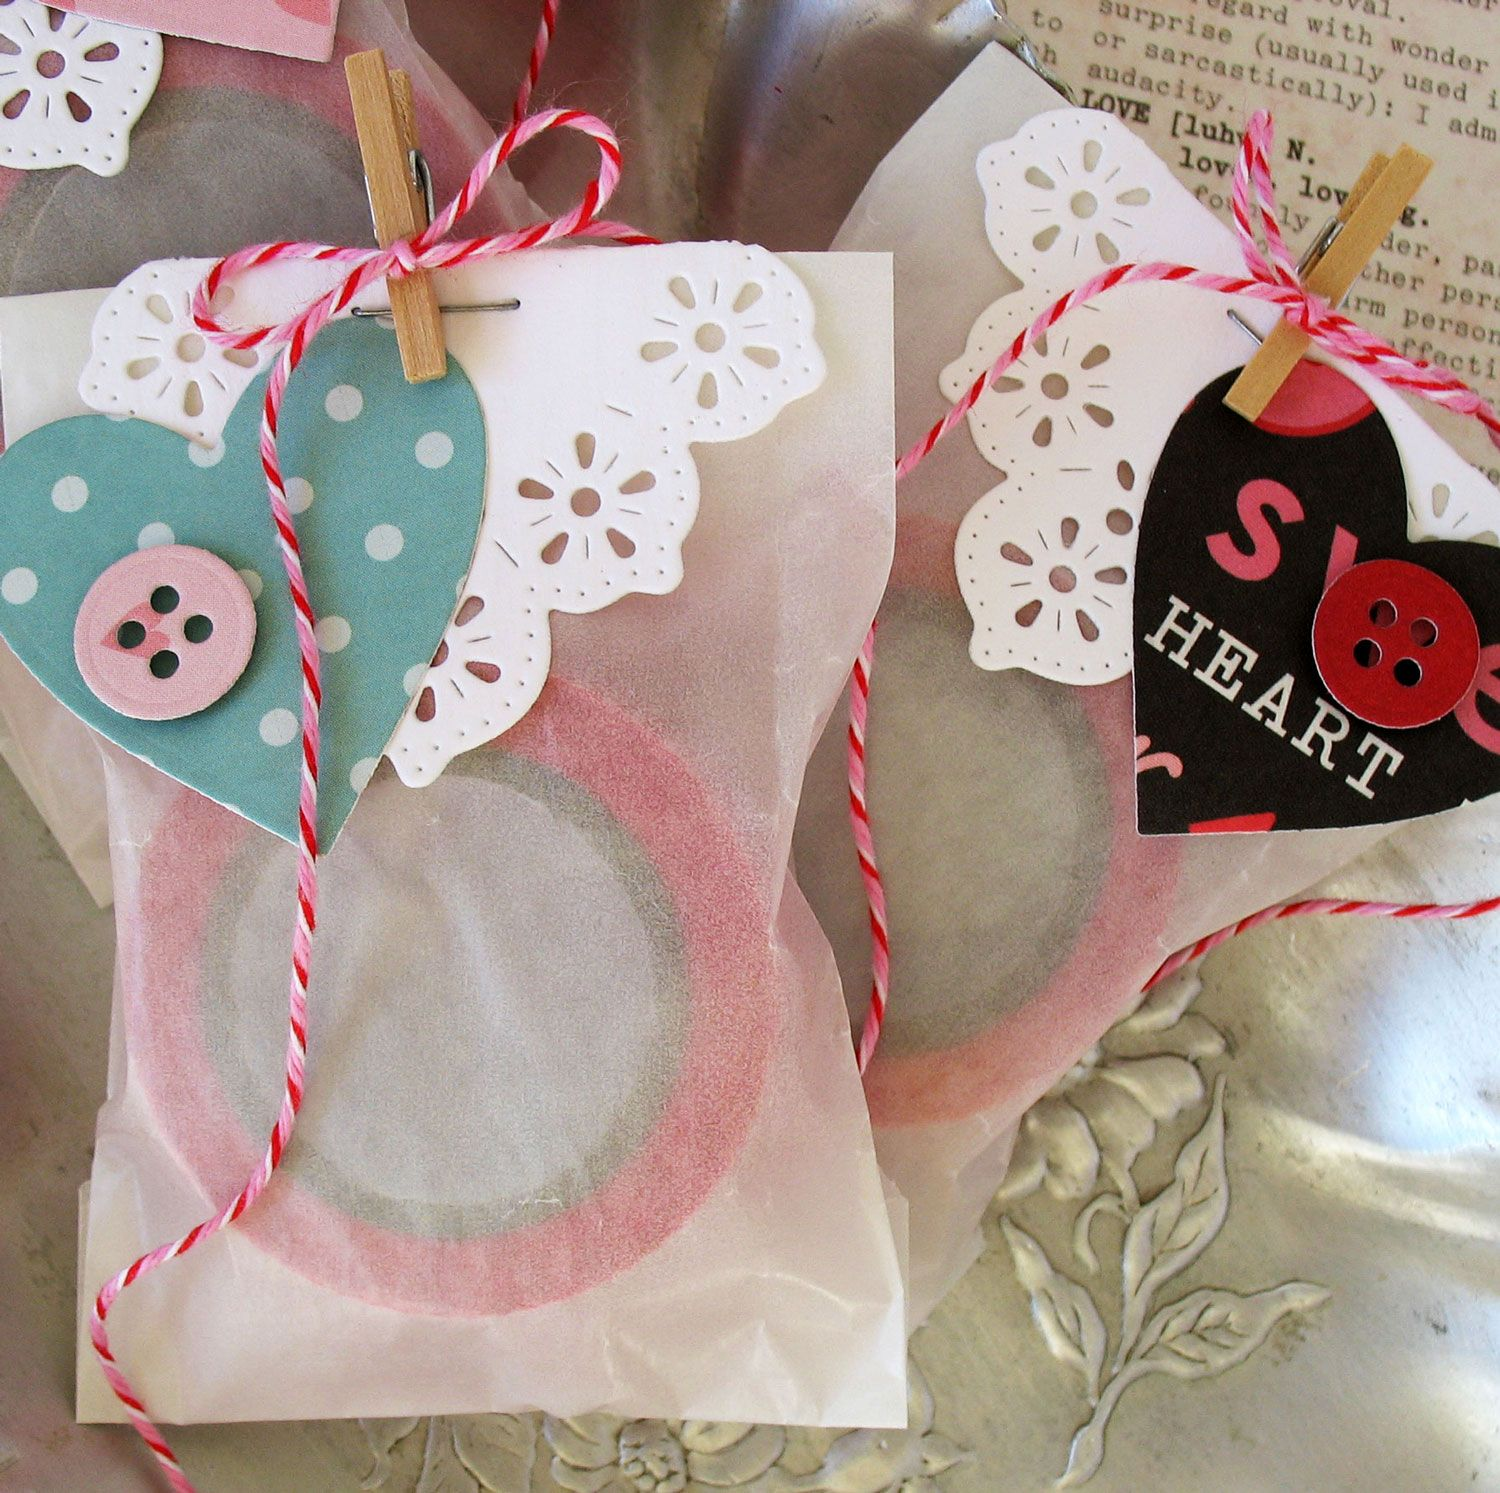 Make these Valentine's Day Treat Bags by using Top Dog Dies Sophie A2 Mat Die Set and Sew Much Fun Die Set.